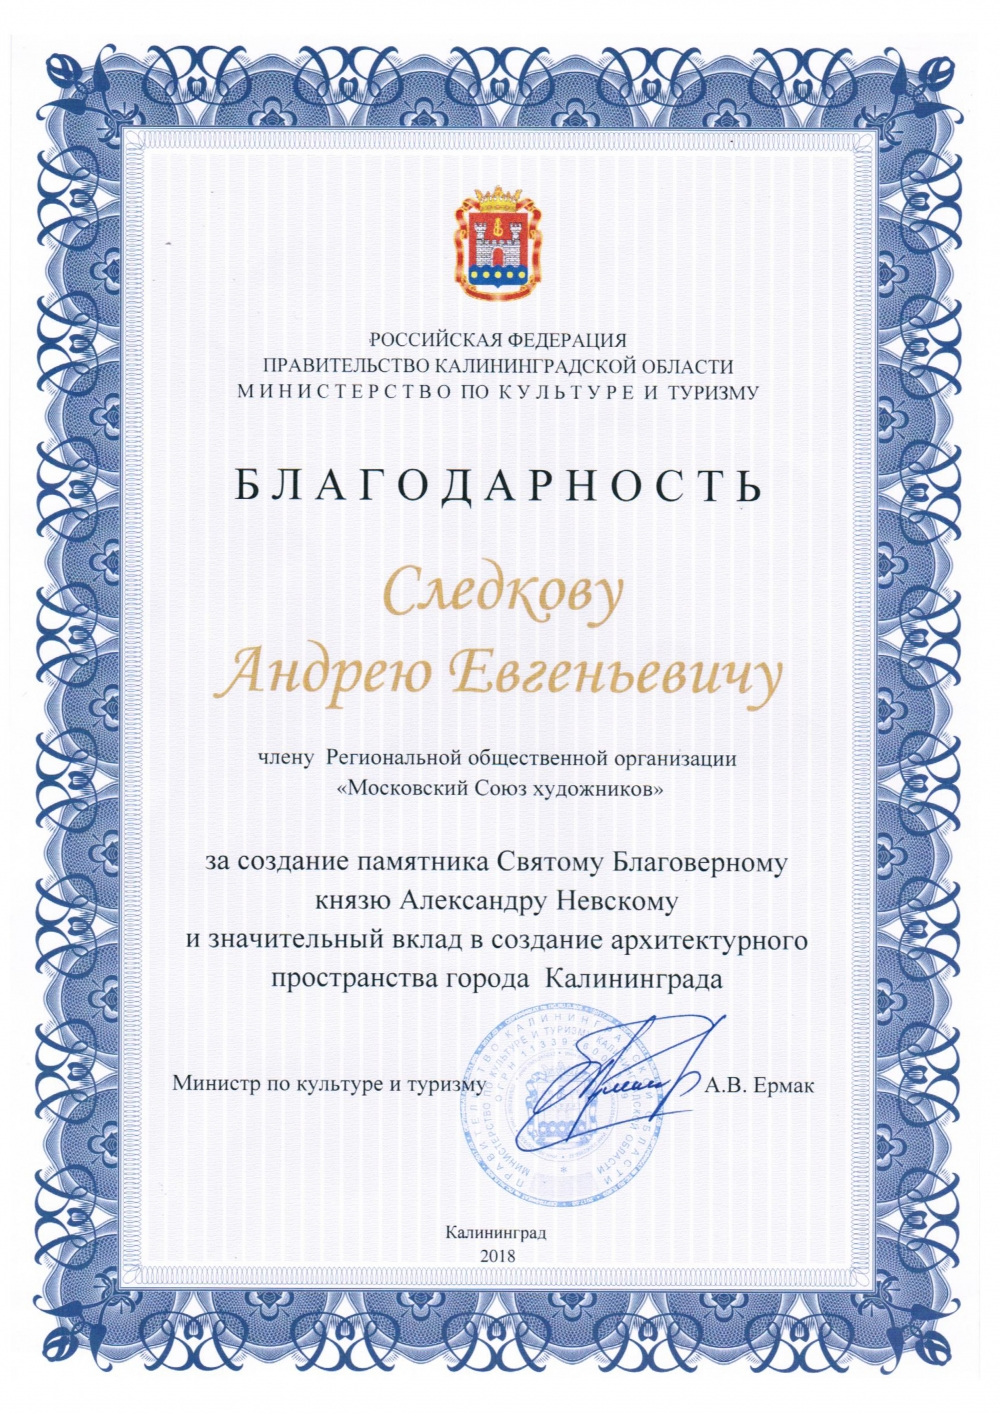 The letter of gratitude from the government of the Kaliningrad region